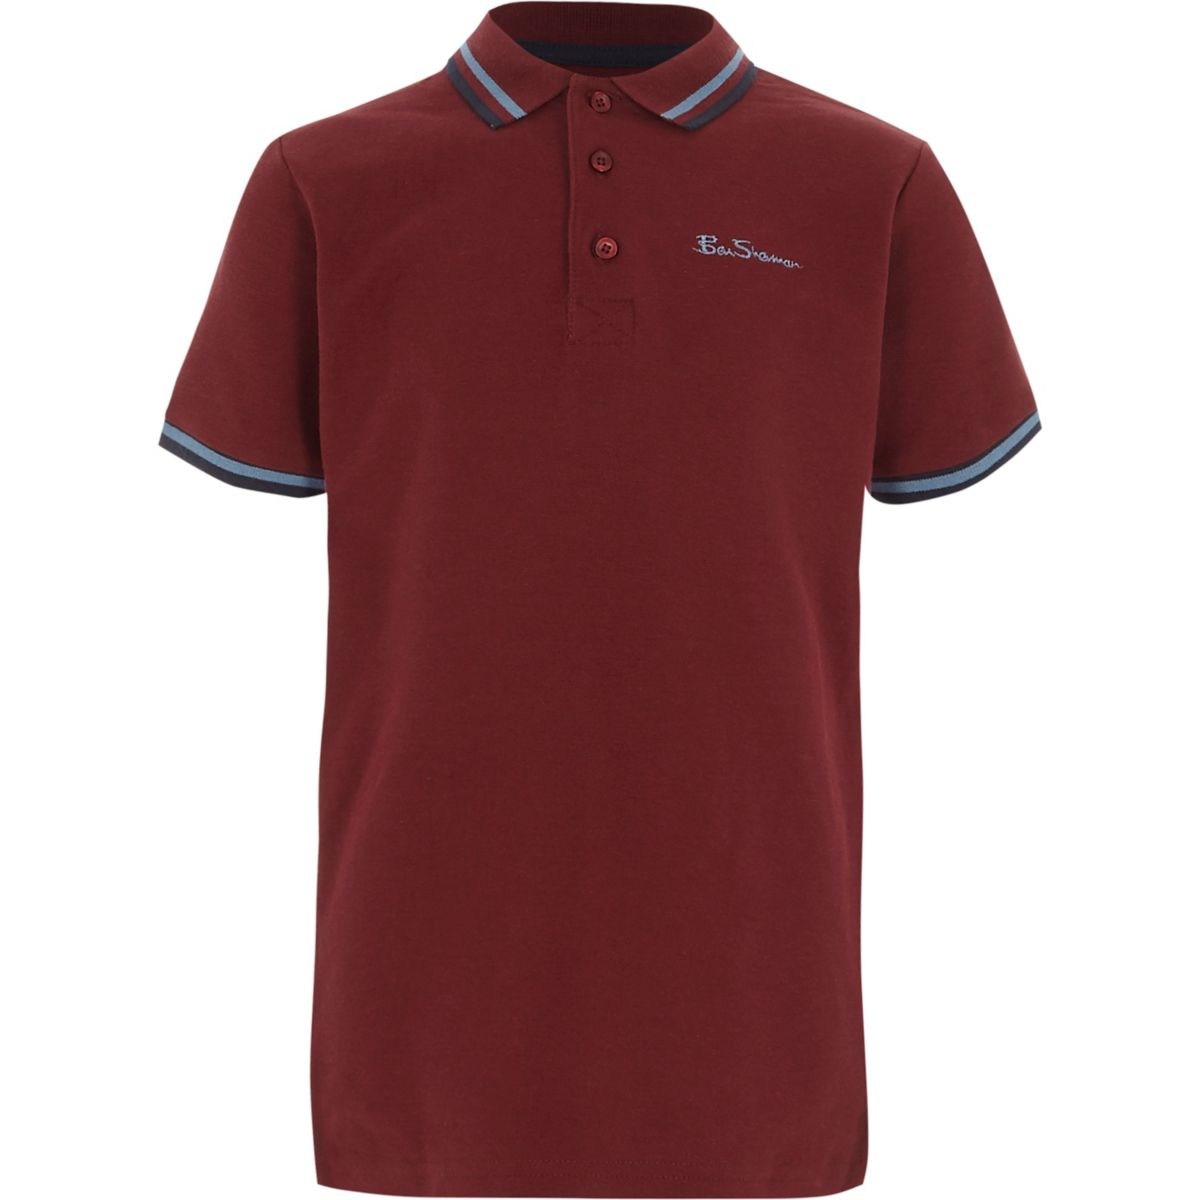 Boys burgundy Ben Sherman tipped polo shirt